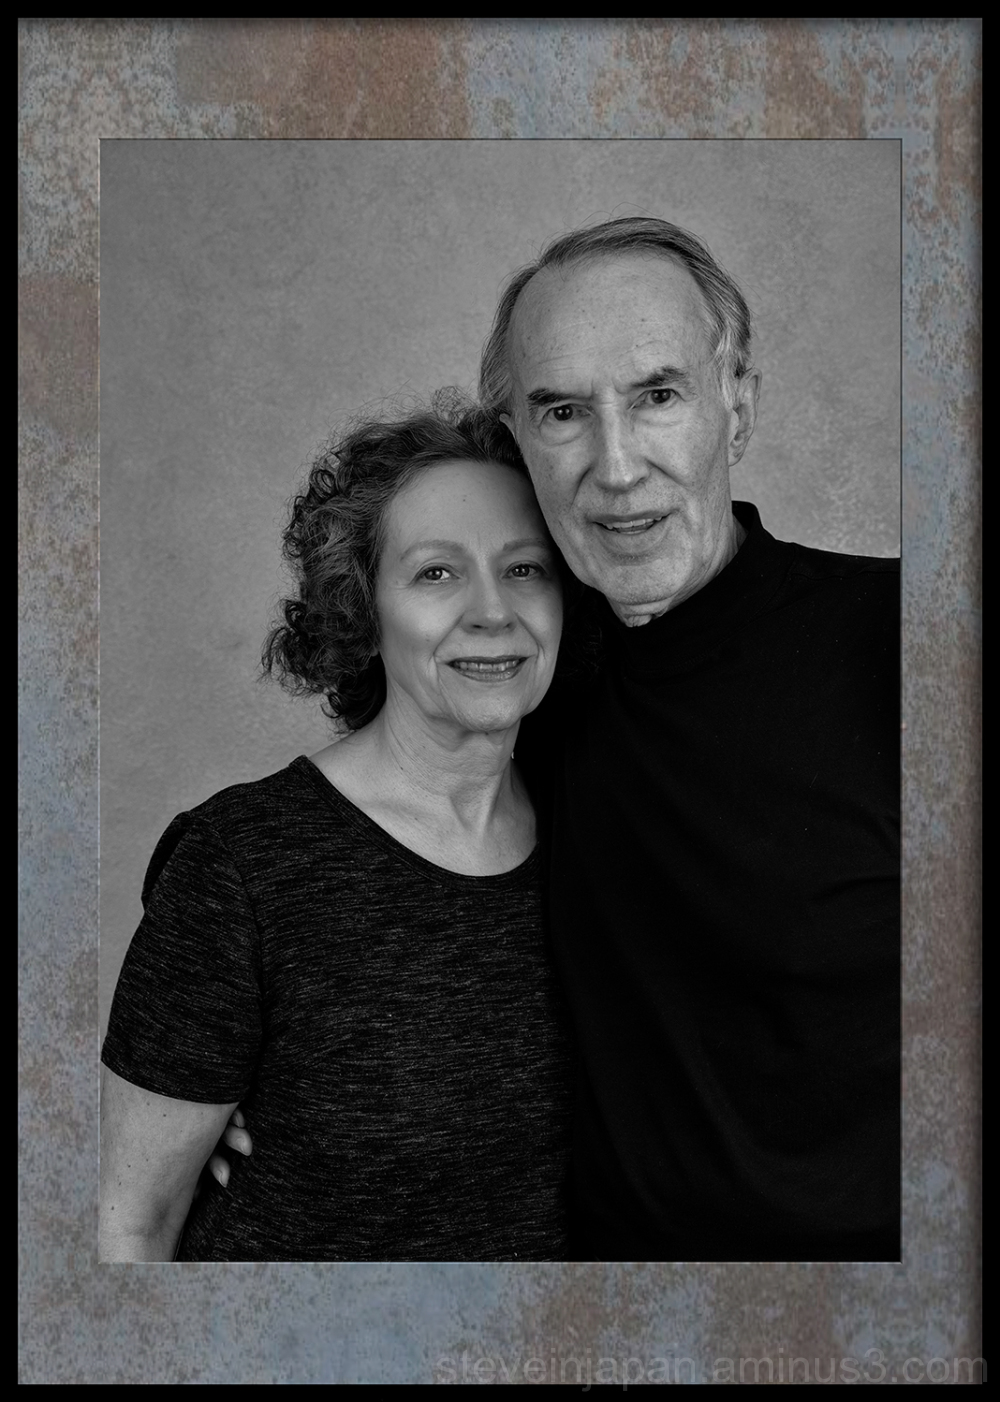 Our 50th wedding anniversary.